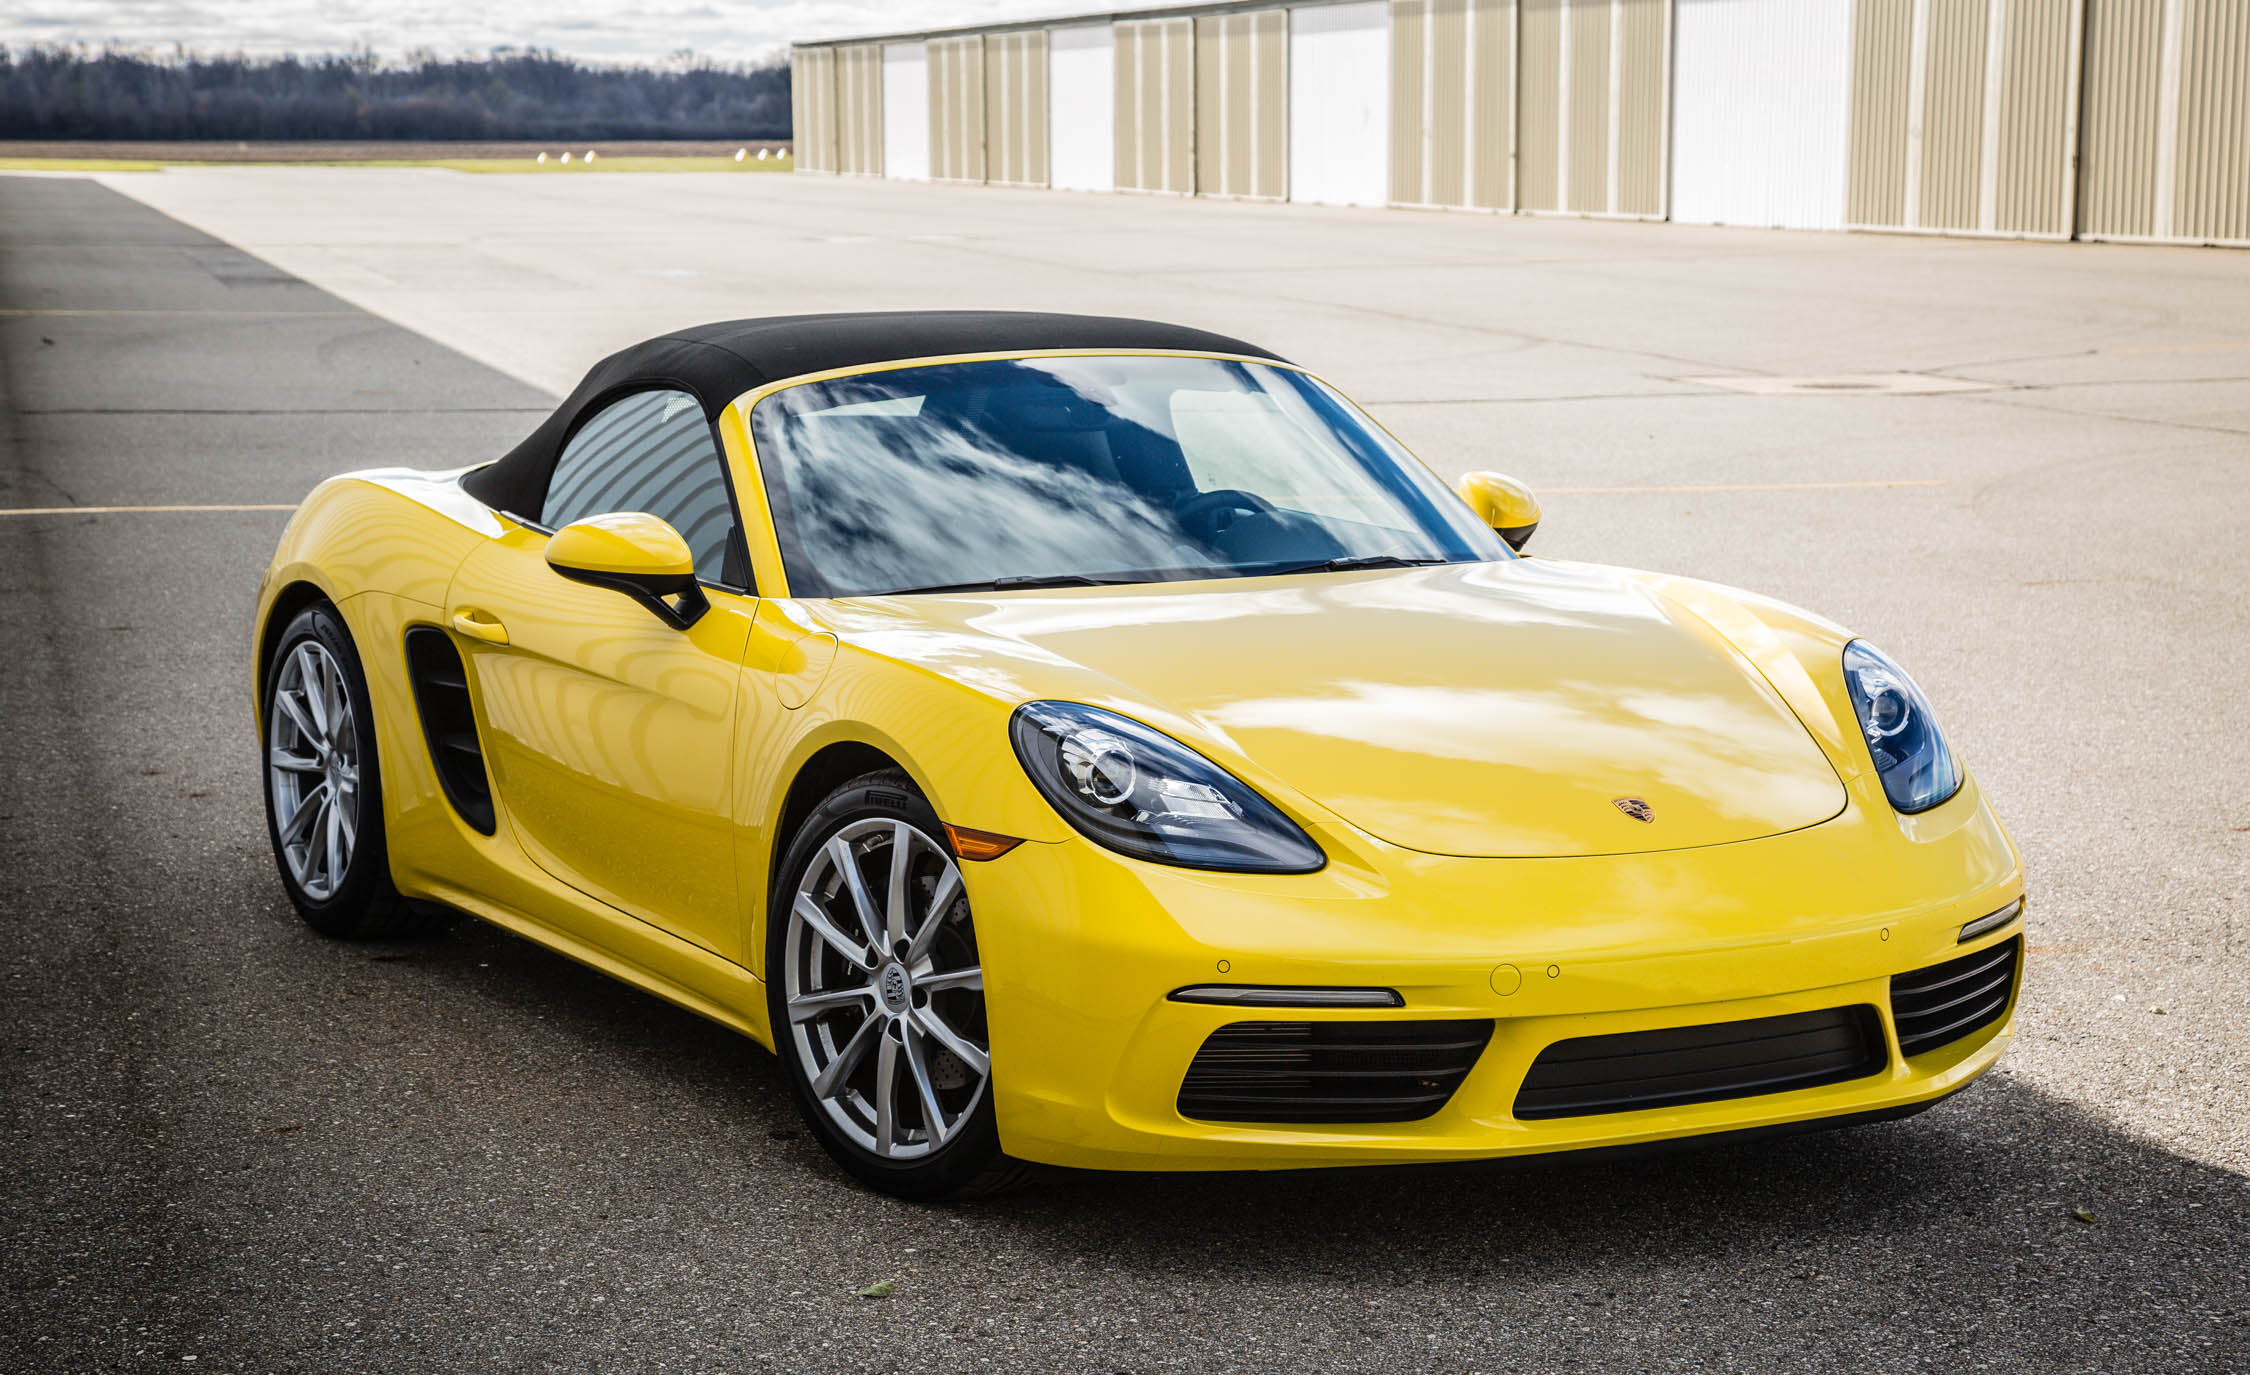 2017 Porsche 718 Boxster Exterior Yellow (View 7 of 71)